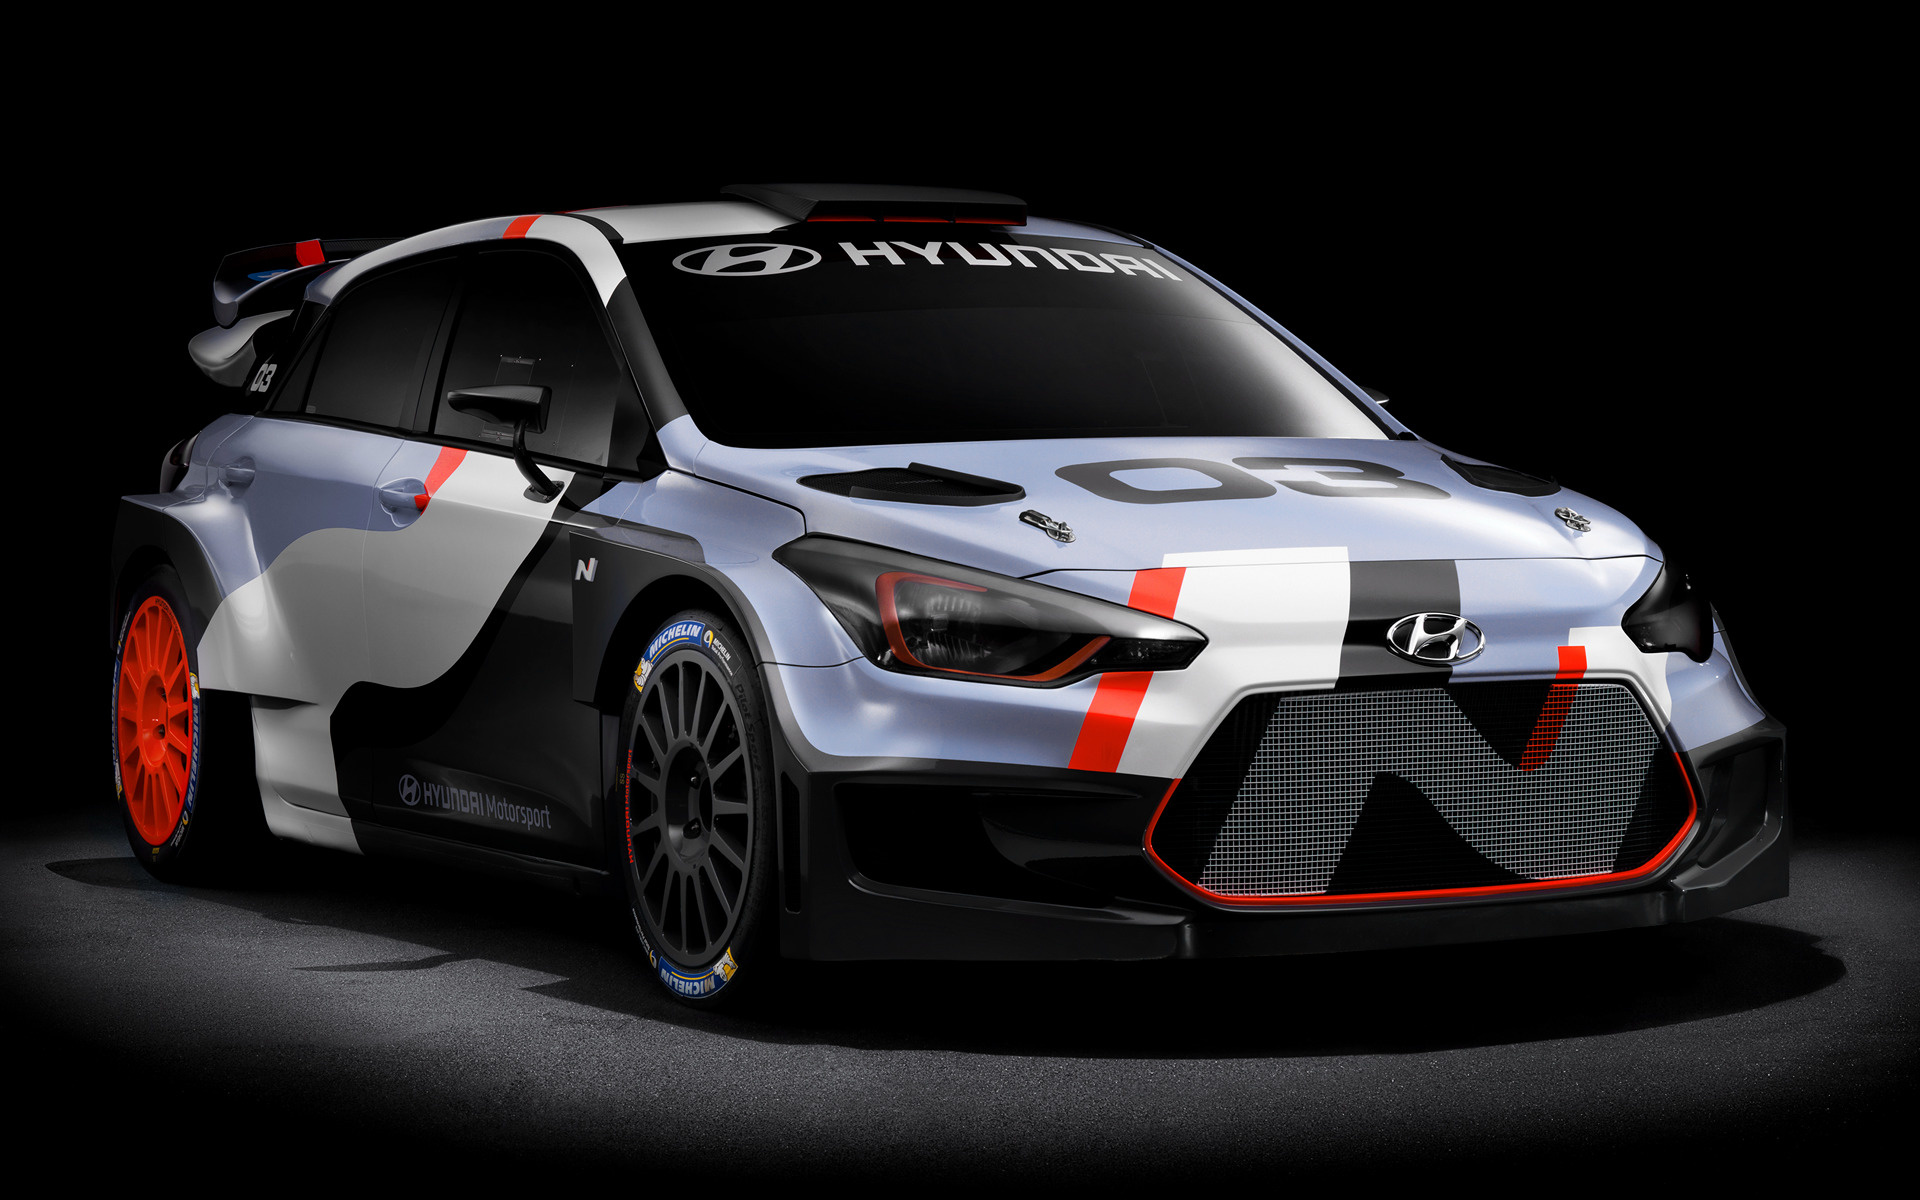 2015 Hyundai I20 Wrc Concept Wallpapers And Hd Images